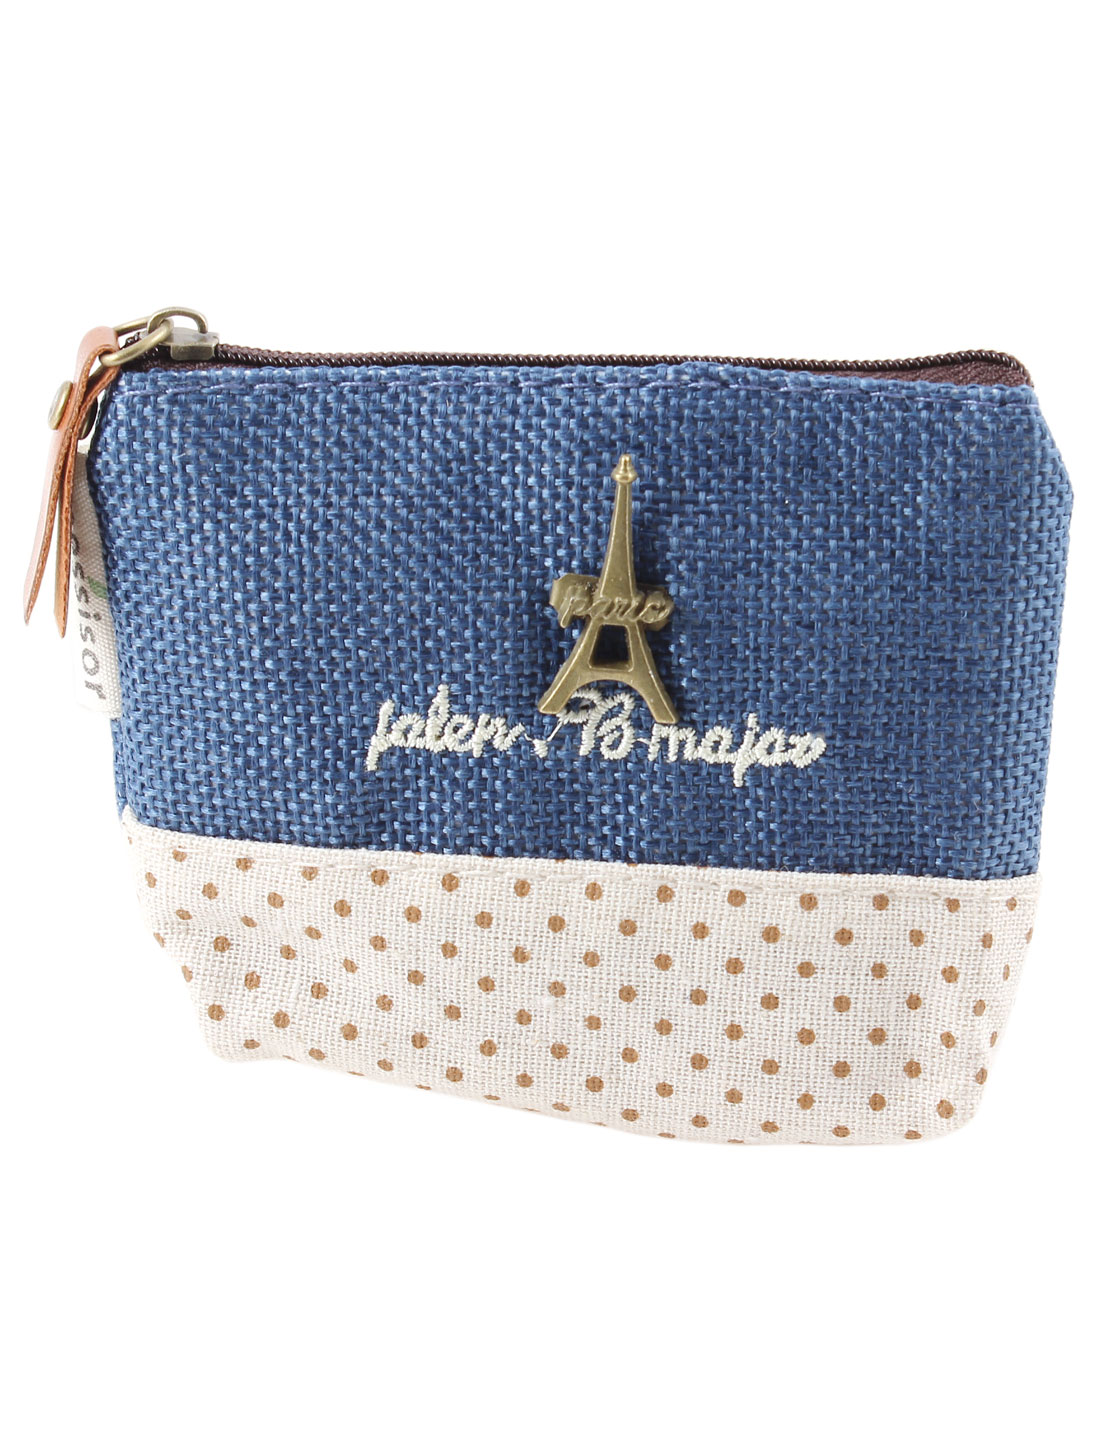 Dots Pattern Zipper Closure Metal Eiffel Tower Decor Cash Coin Money Key Credit Card Purse Bag Dark Blue for Ladies